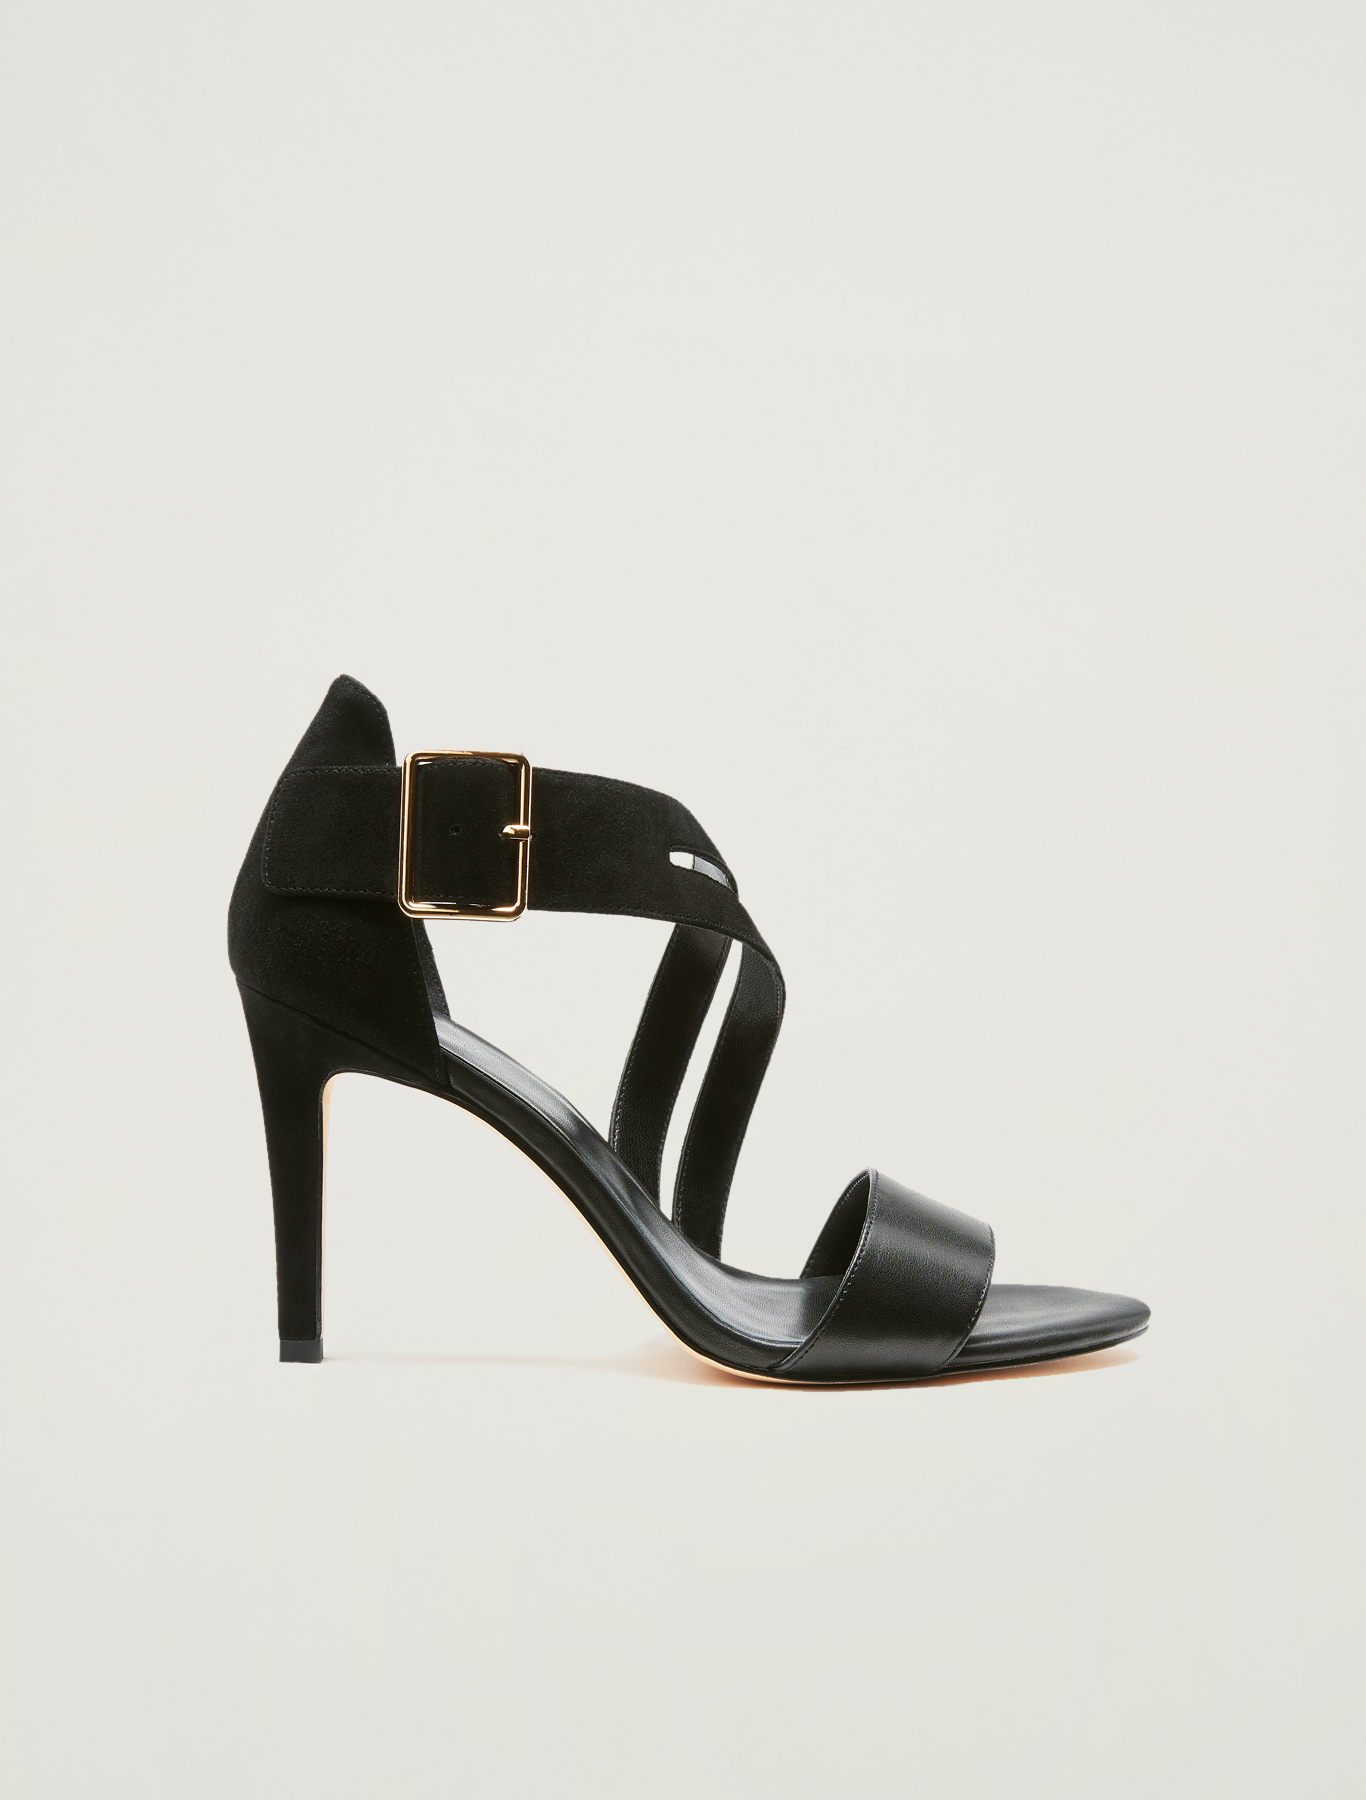 Sandals with asymmetric band - black - pennyblack